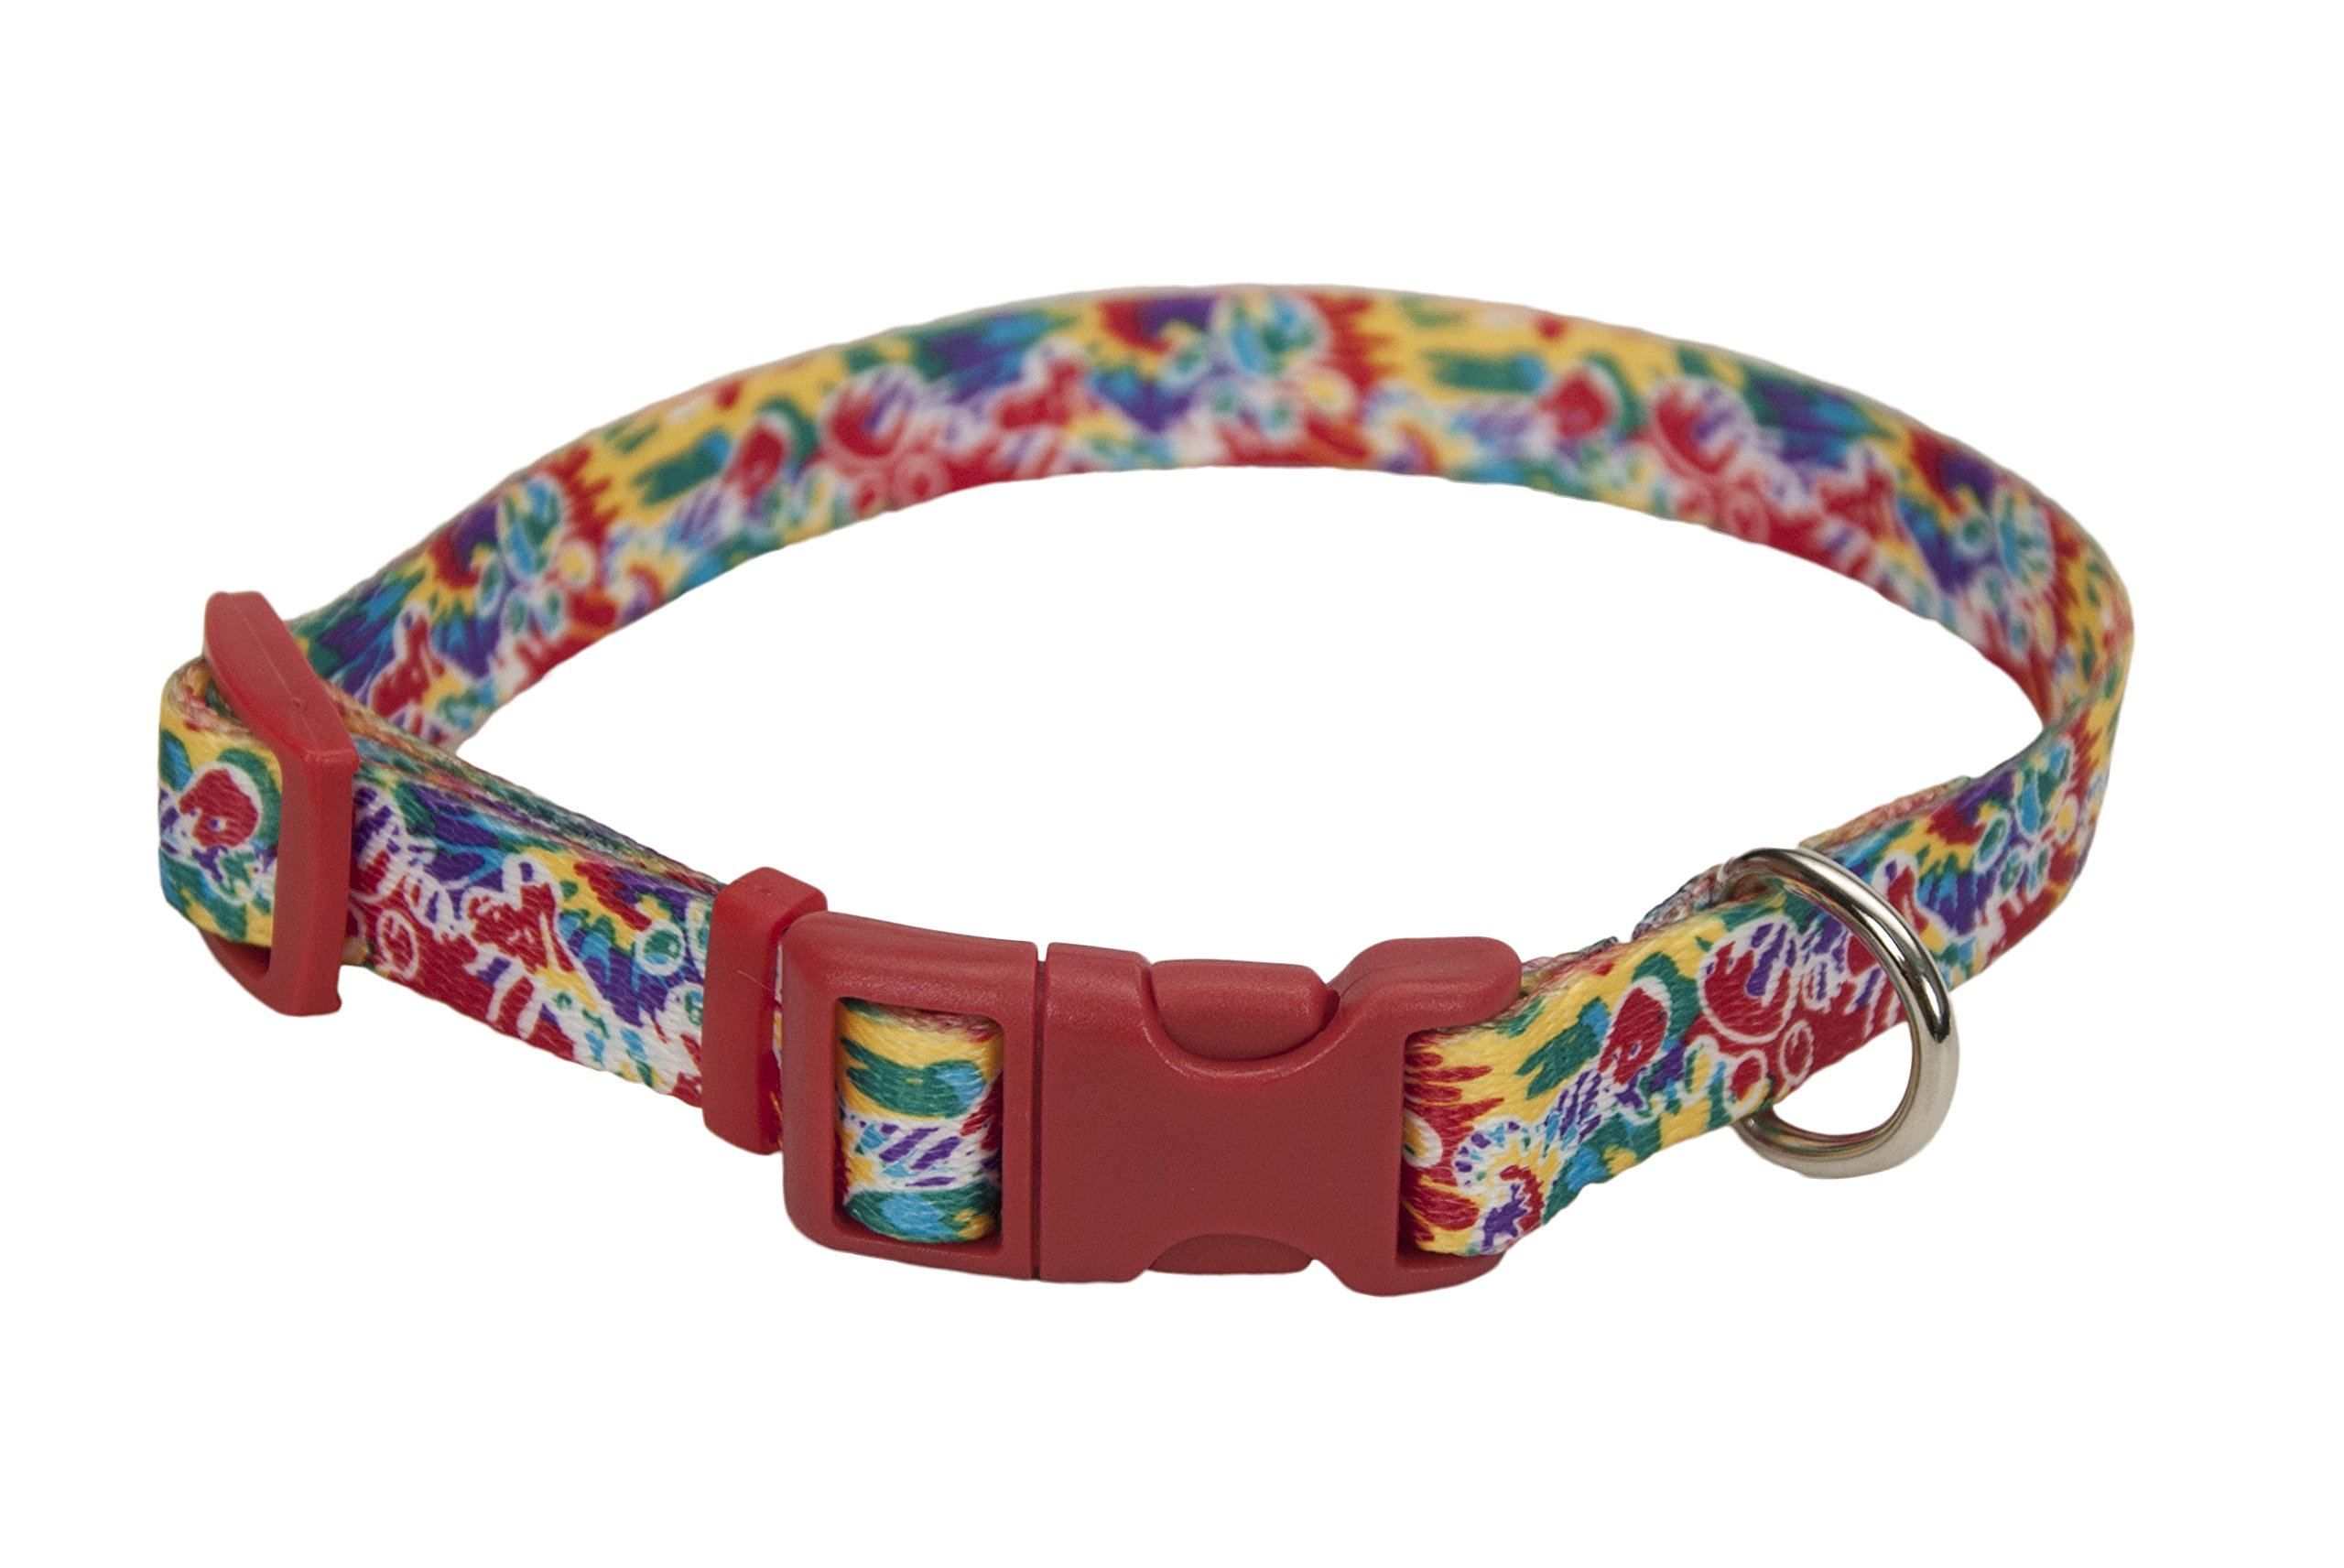 Coastal Pet Products 06621 RTD20 Adjustable Dog Collar, 3/4'' x 14''-20'' by Coastal Pet